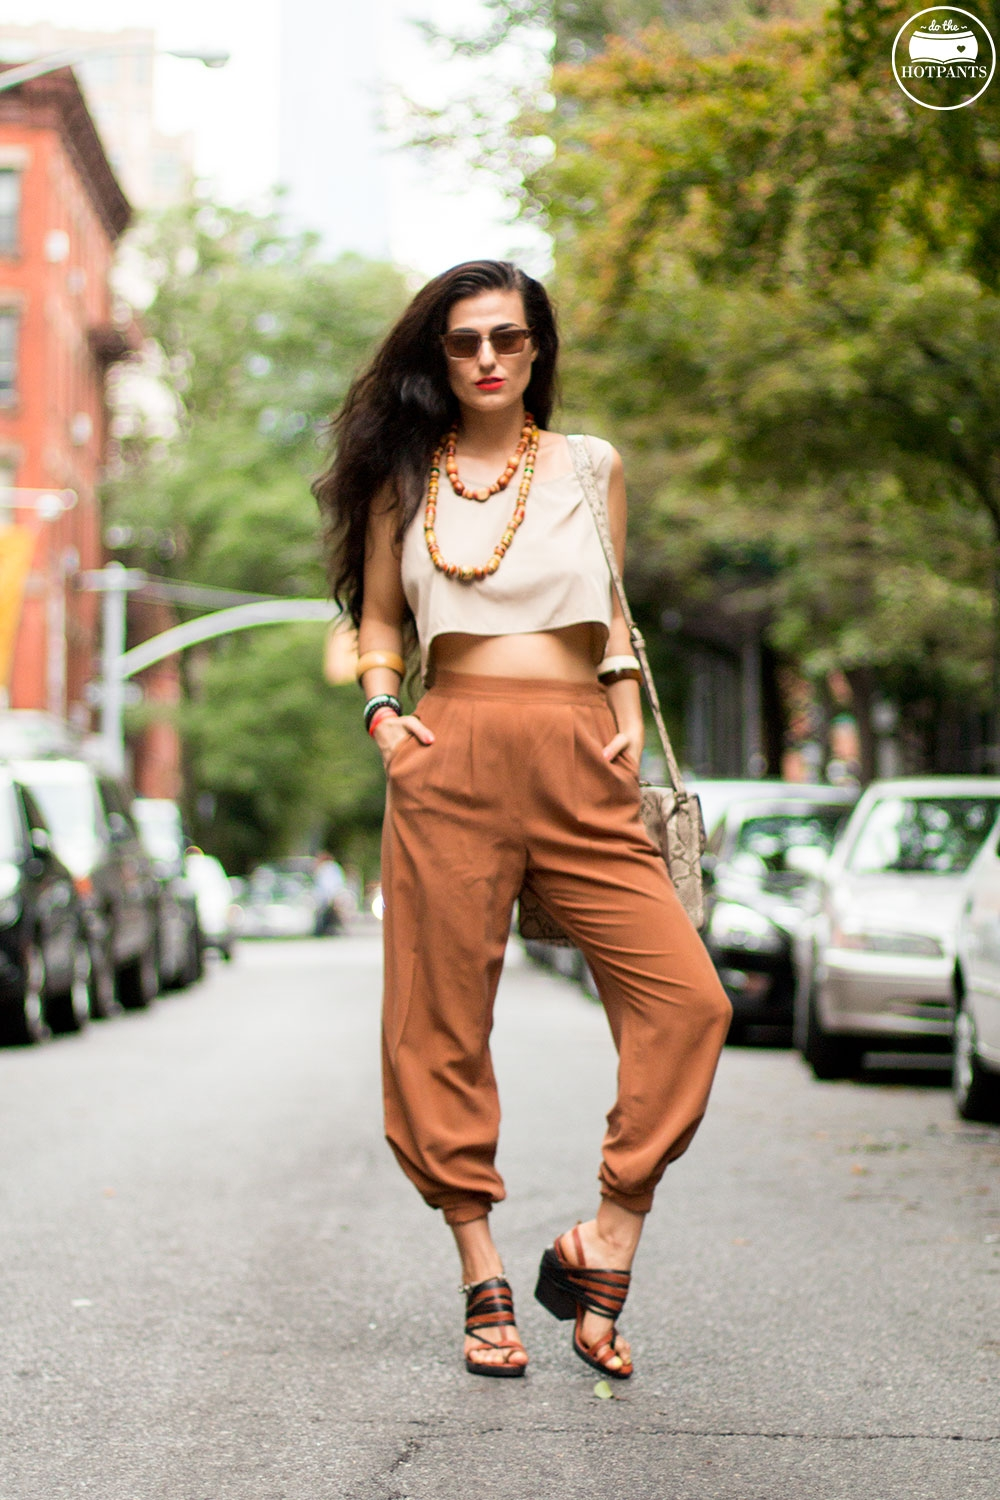 Do The Hotpants Dana Suchow Dharma Sunglasses Summer New York City Outfit Streetstyle Neutral Nude Fashion IMG_9858